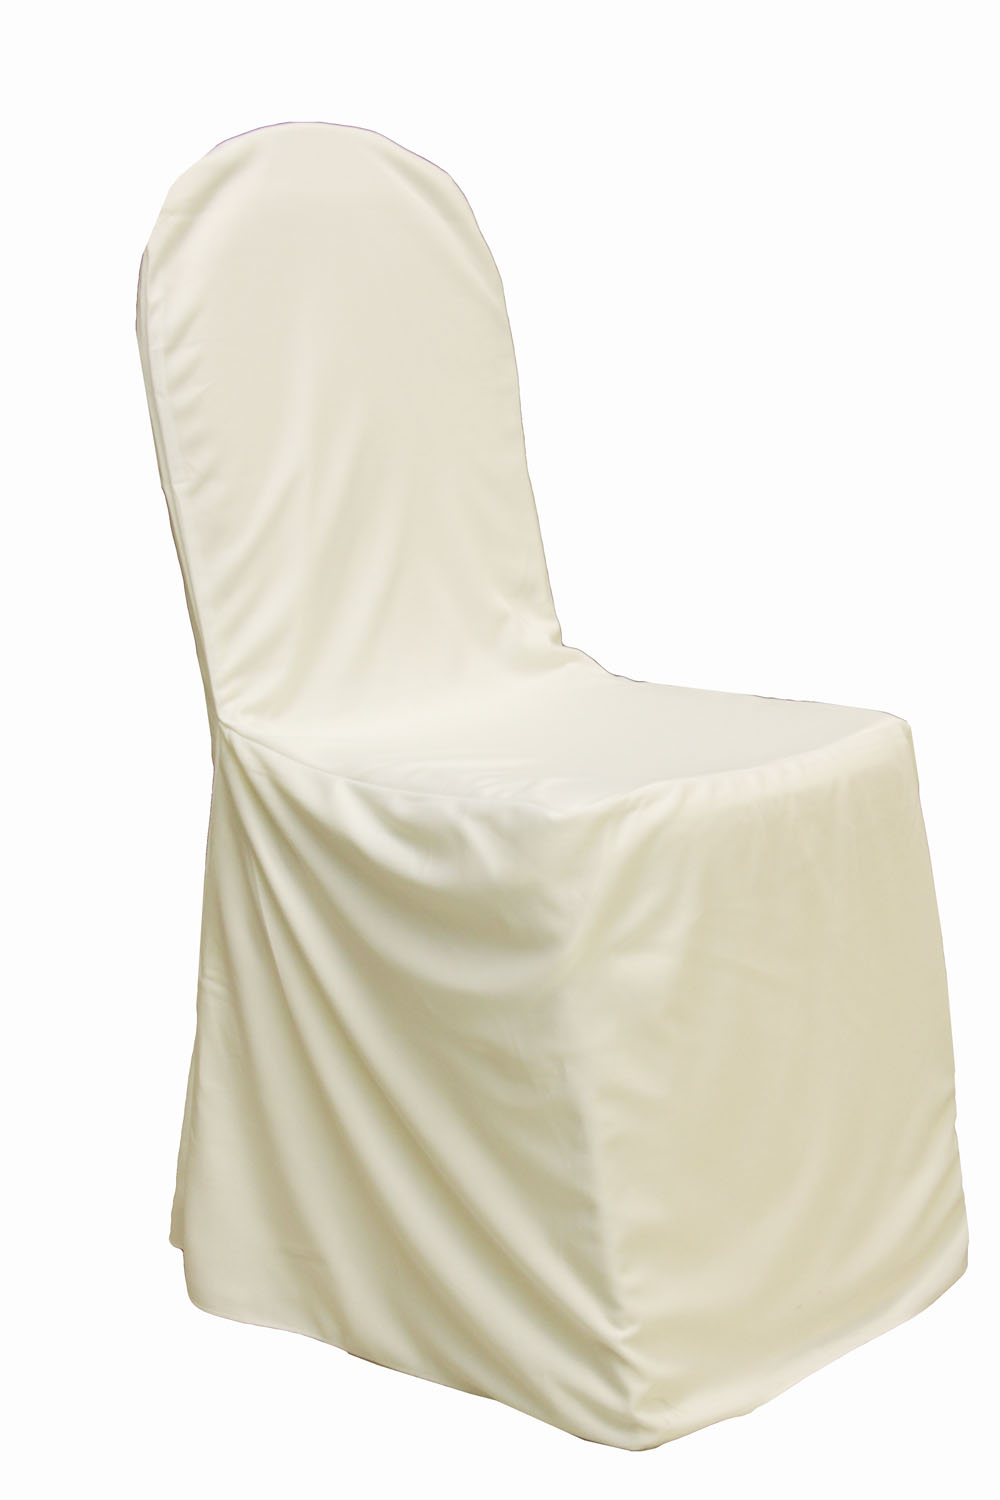 chair covers ivory best home office chairs scuba stretch banquet cover at cv linens clearance